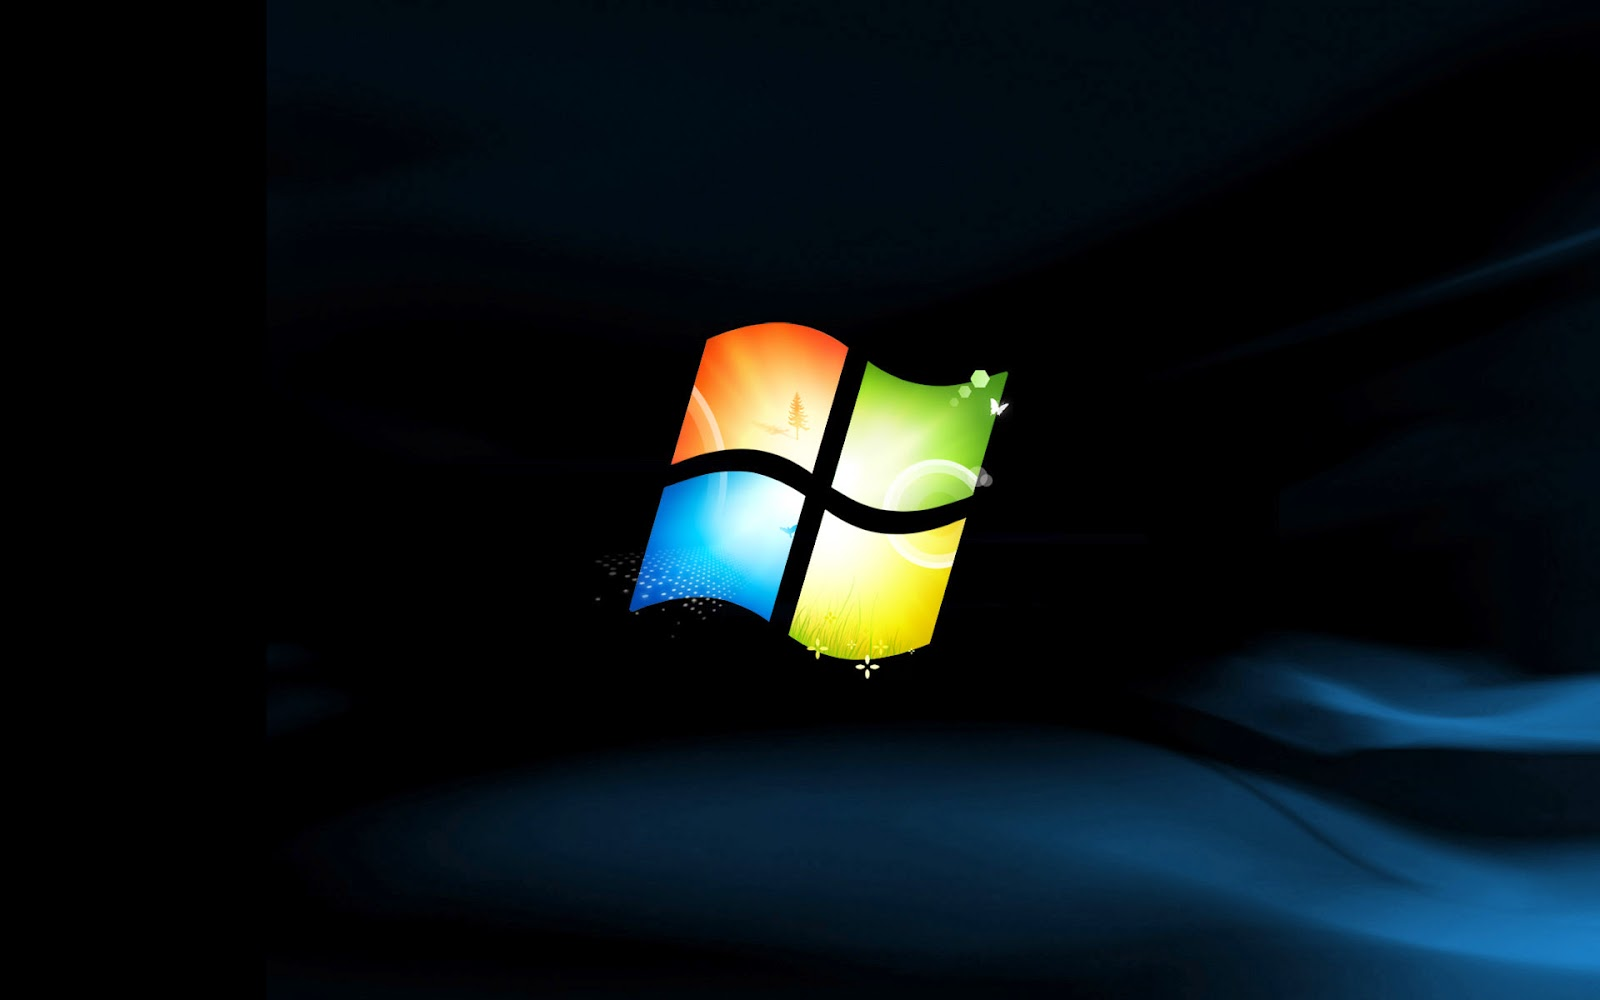 Windows 7 Backgrounds Group (91+)